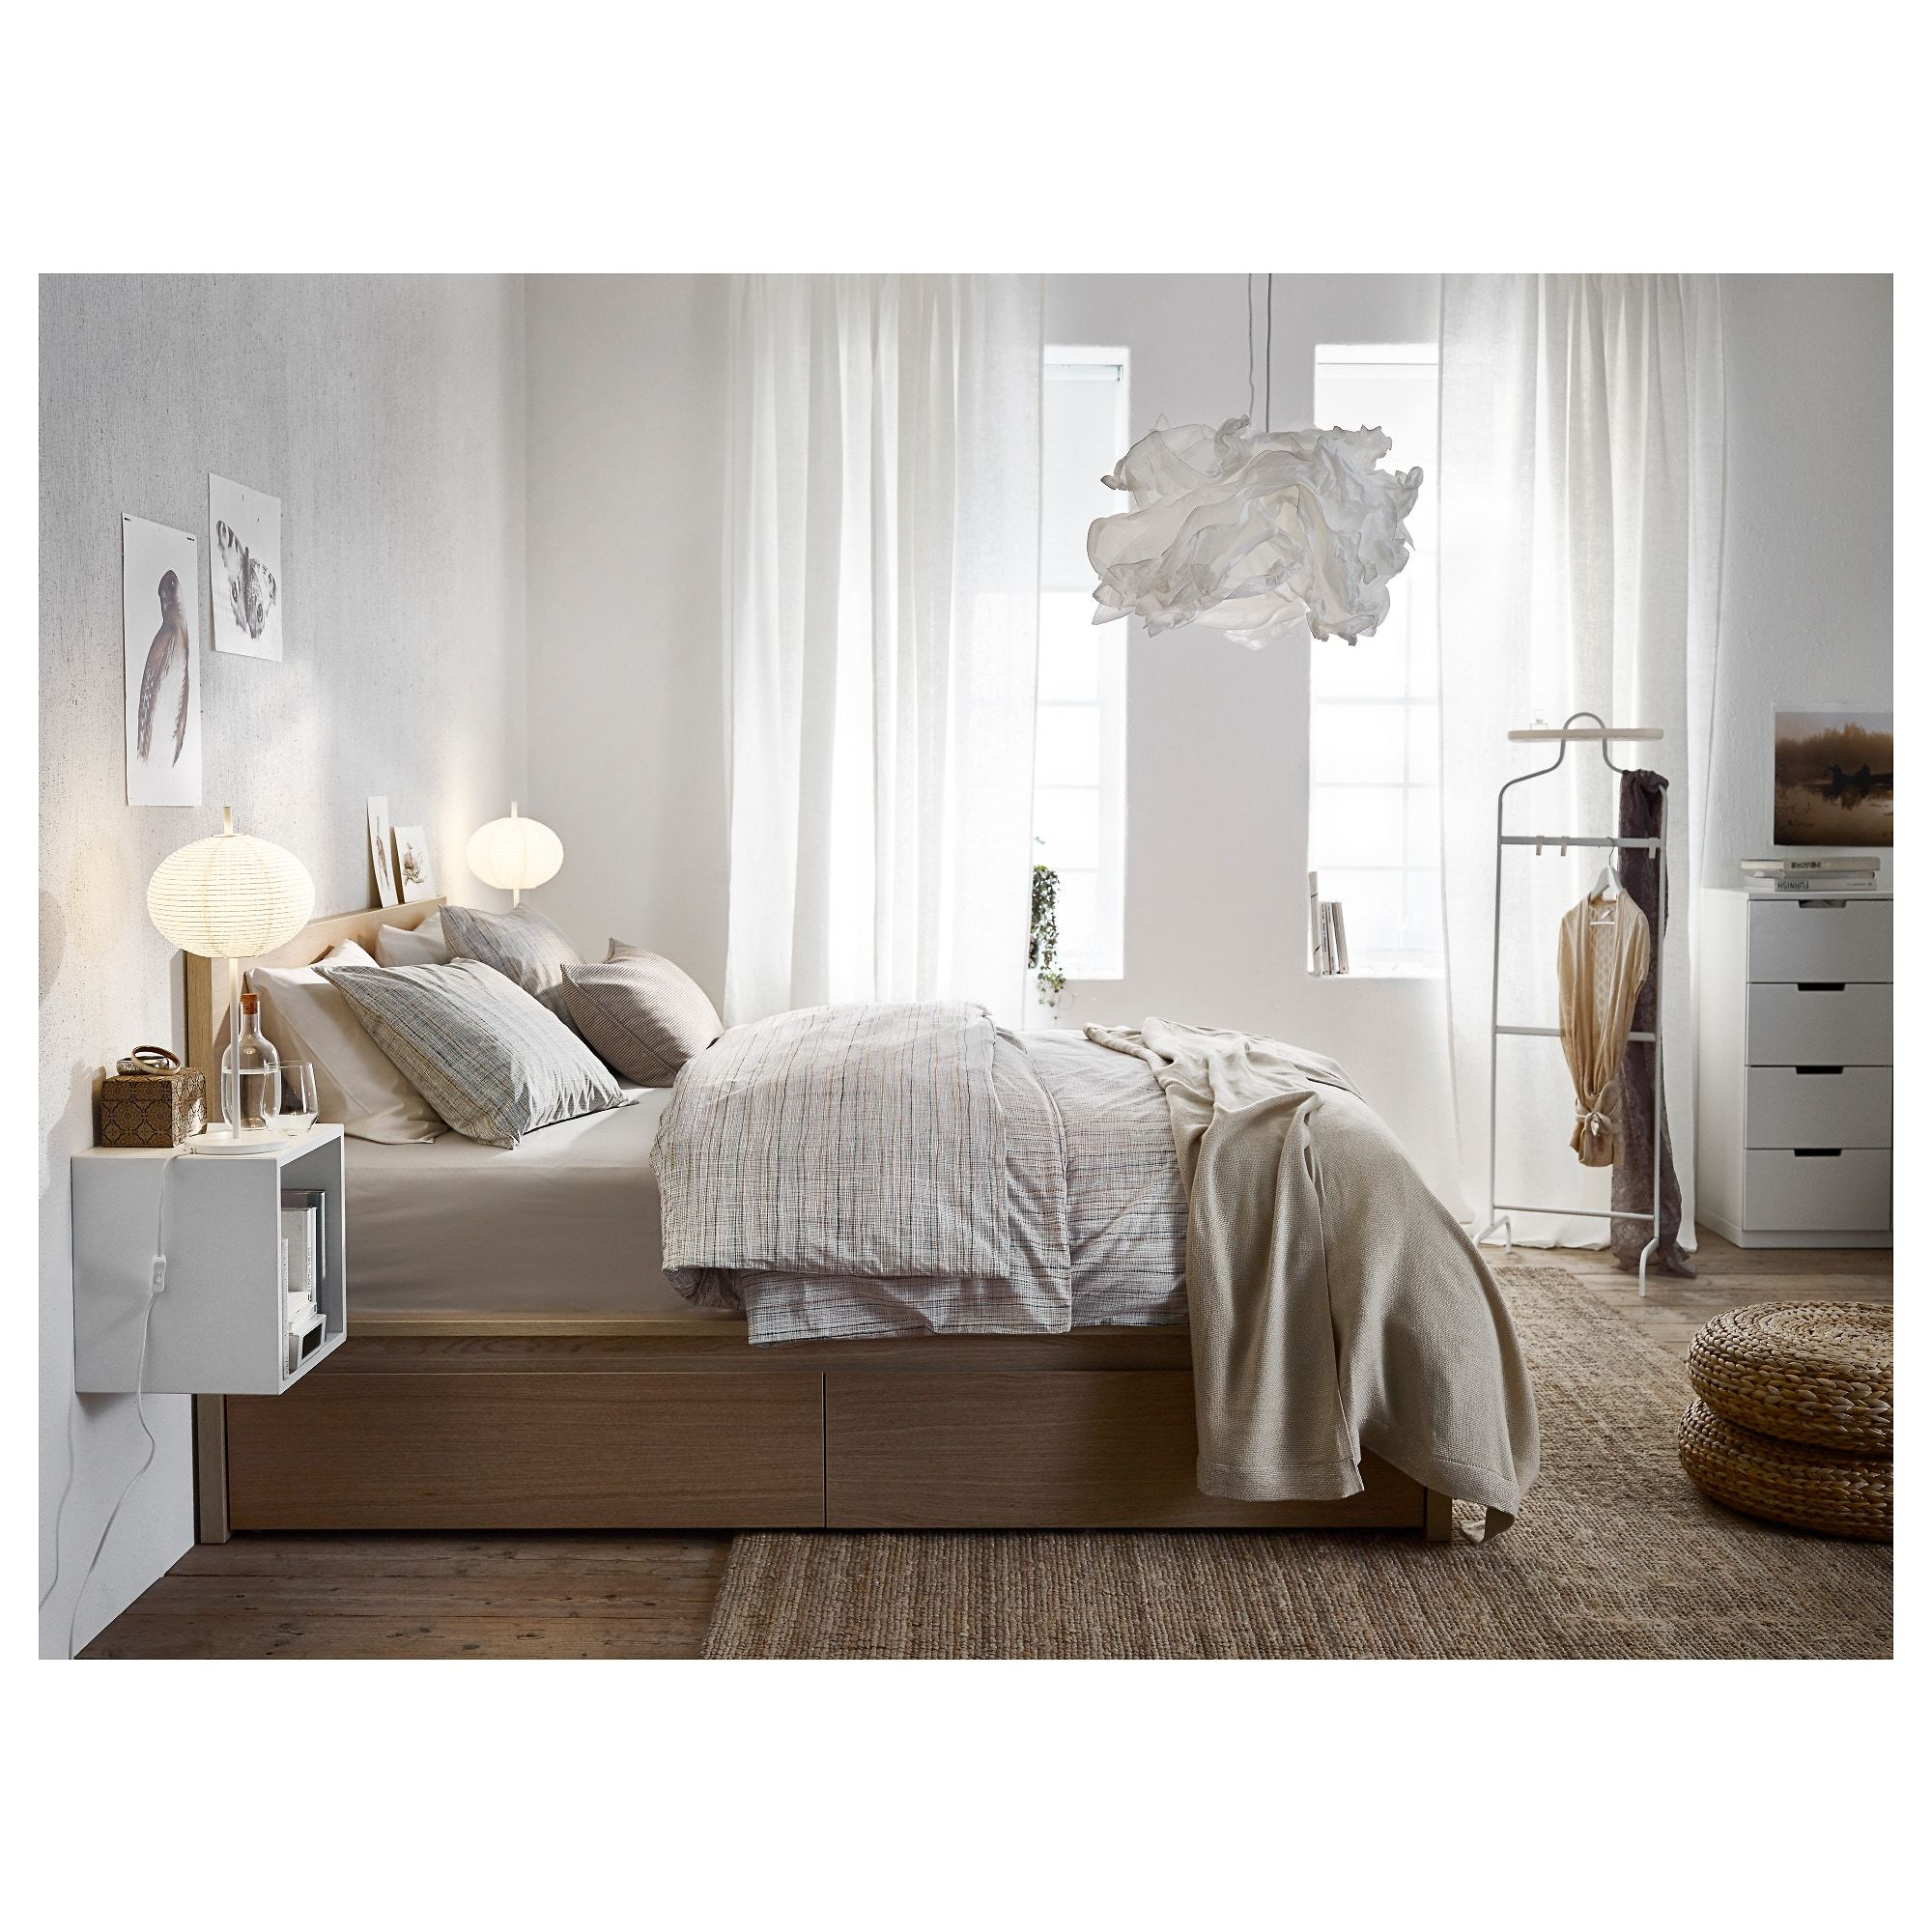 Malm High Bed Frame 2 Storage Boxes White Stained Oak Veneer King Ikea High Bed Frame Malm Bed Malm Bed Frame